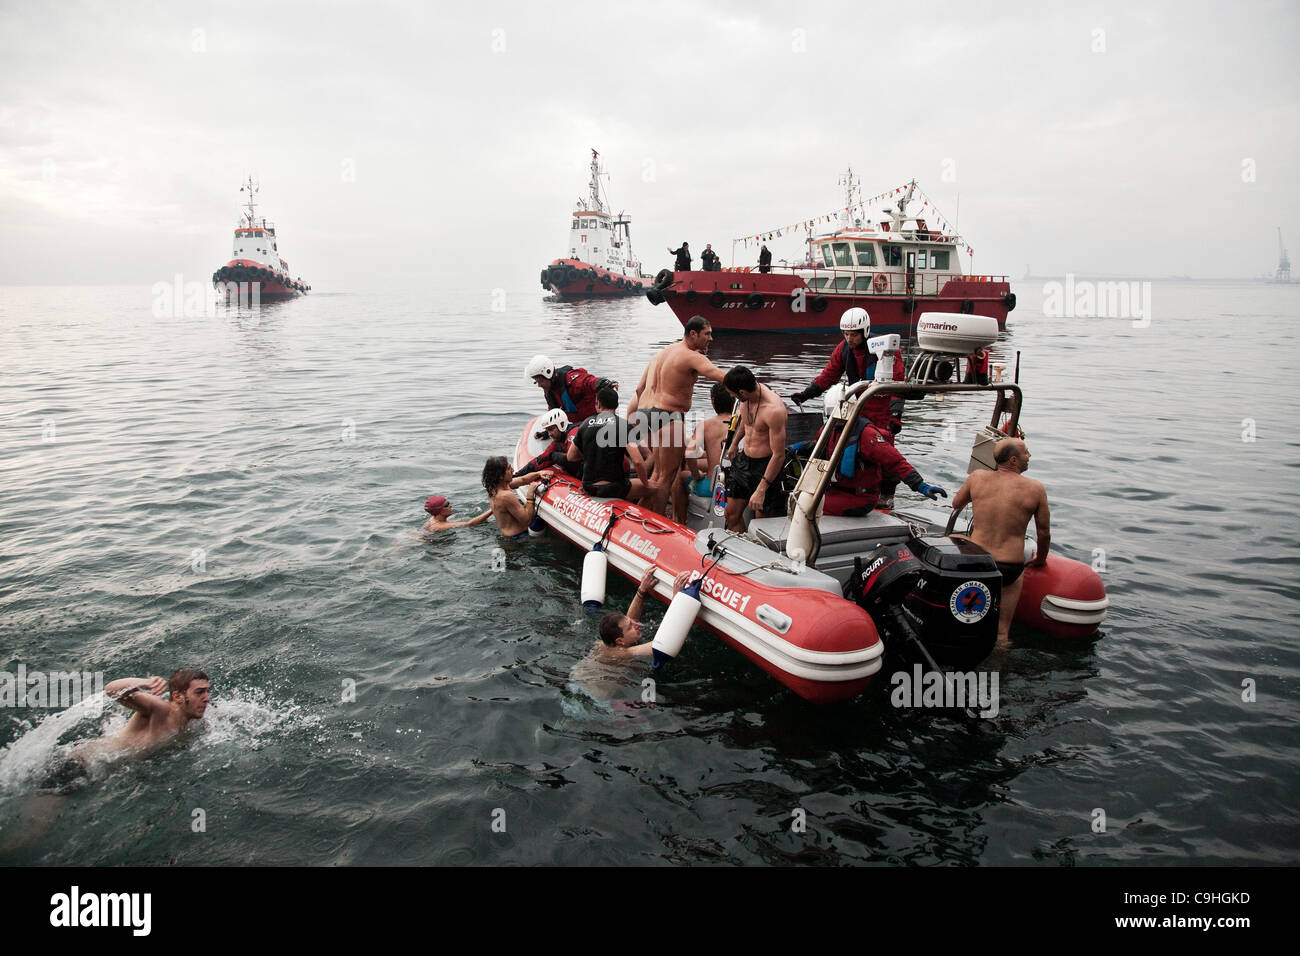 Thessaloniki, Greece. 6th Jan, 2012. Celebration of the feast of the Epiphany and 'Blessing of the Waters' - Stock Image